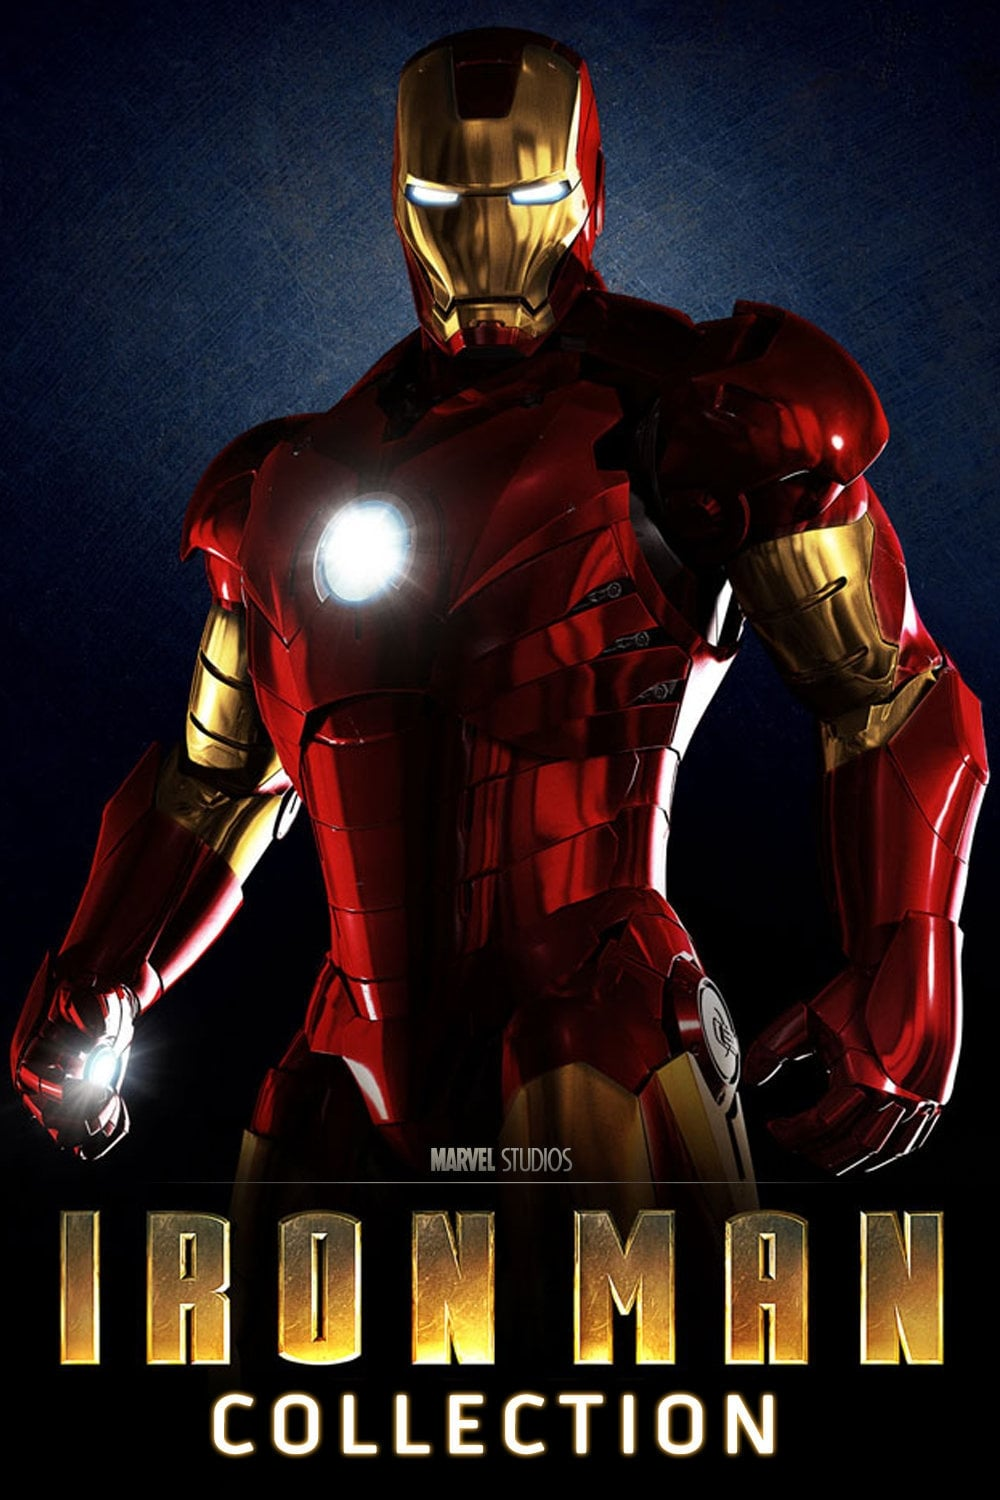 Iron man collection 2008 2013 posters the movie database tmdb - Iron man 1 images ...